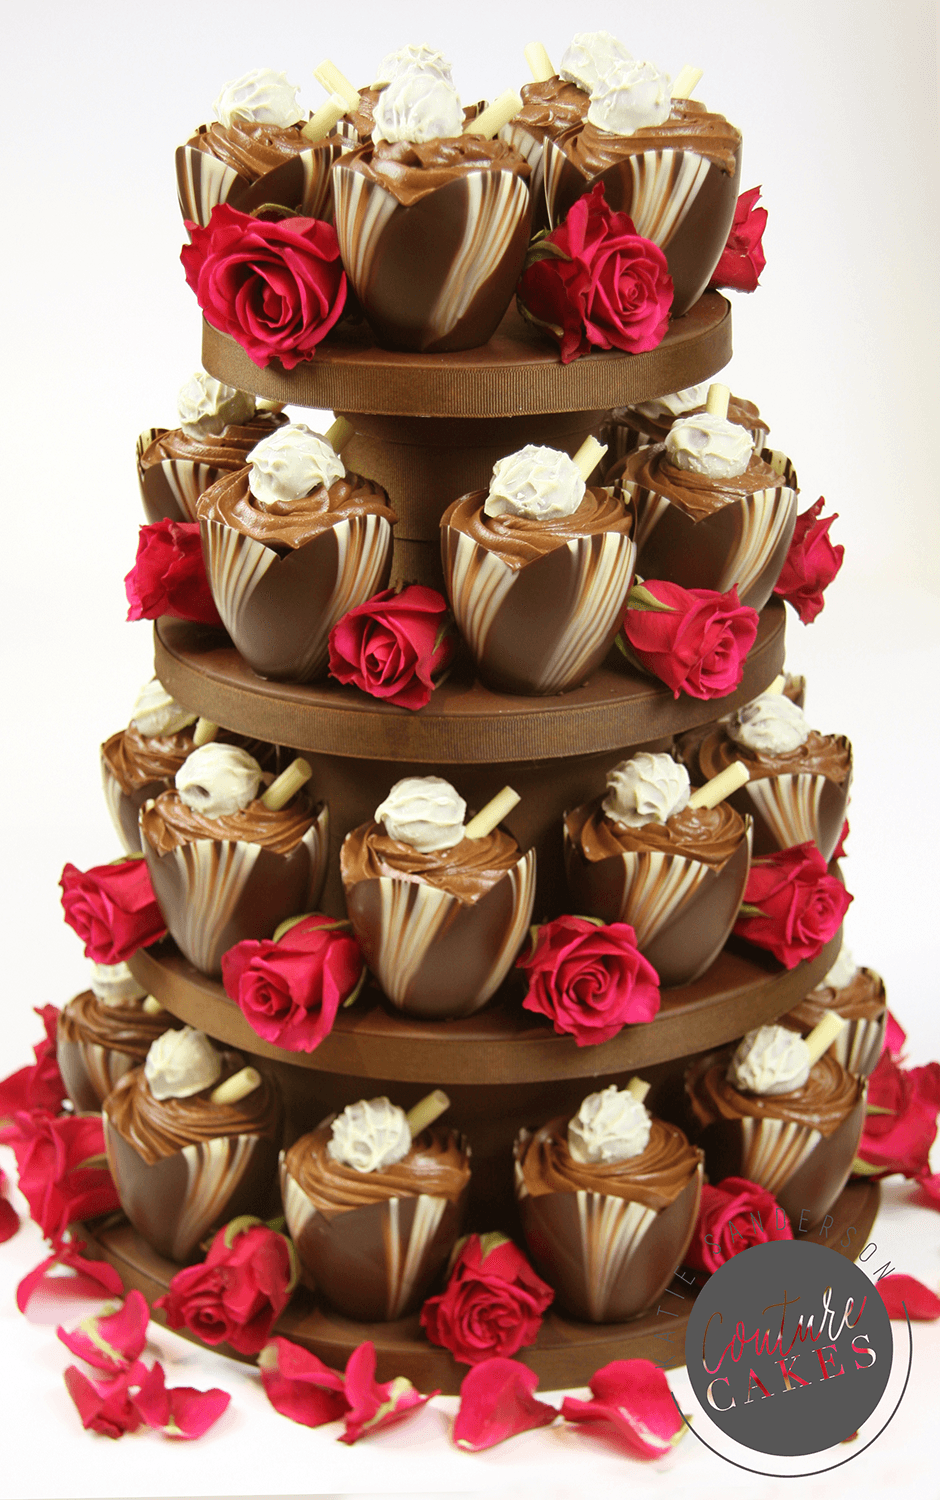 Provides 30 large dessert portions, Price as pictured £266 plus flowers